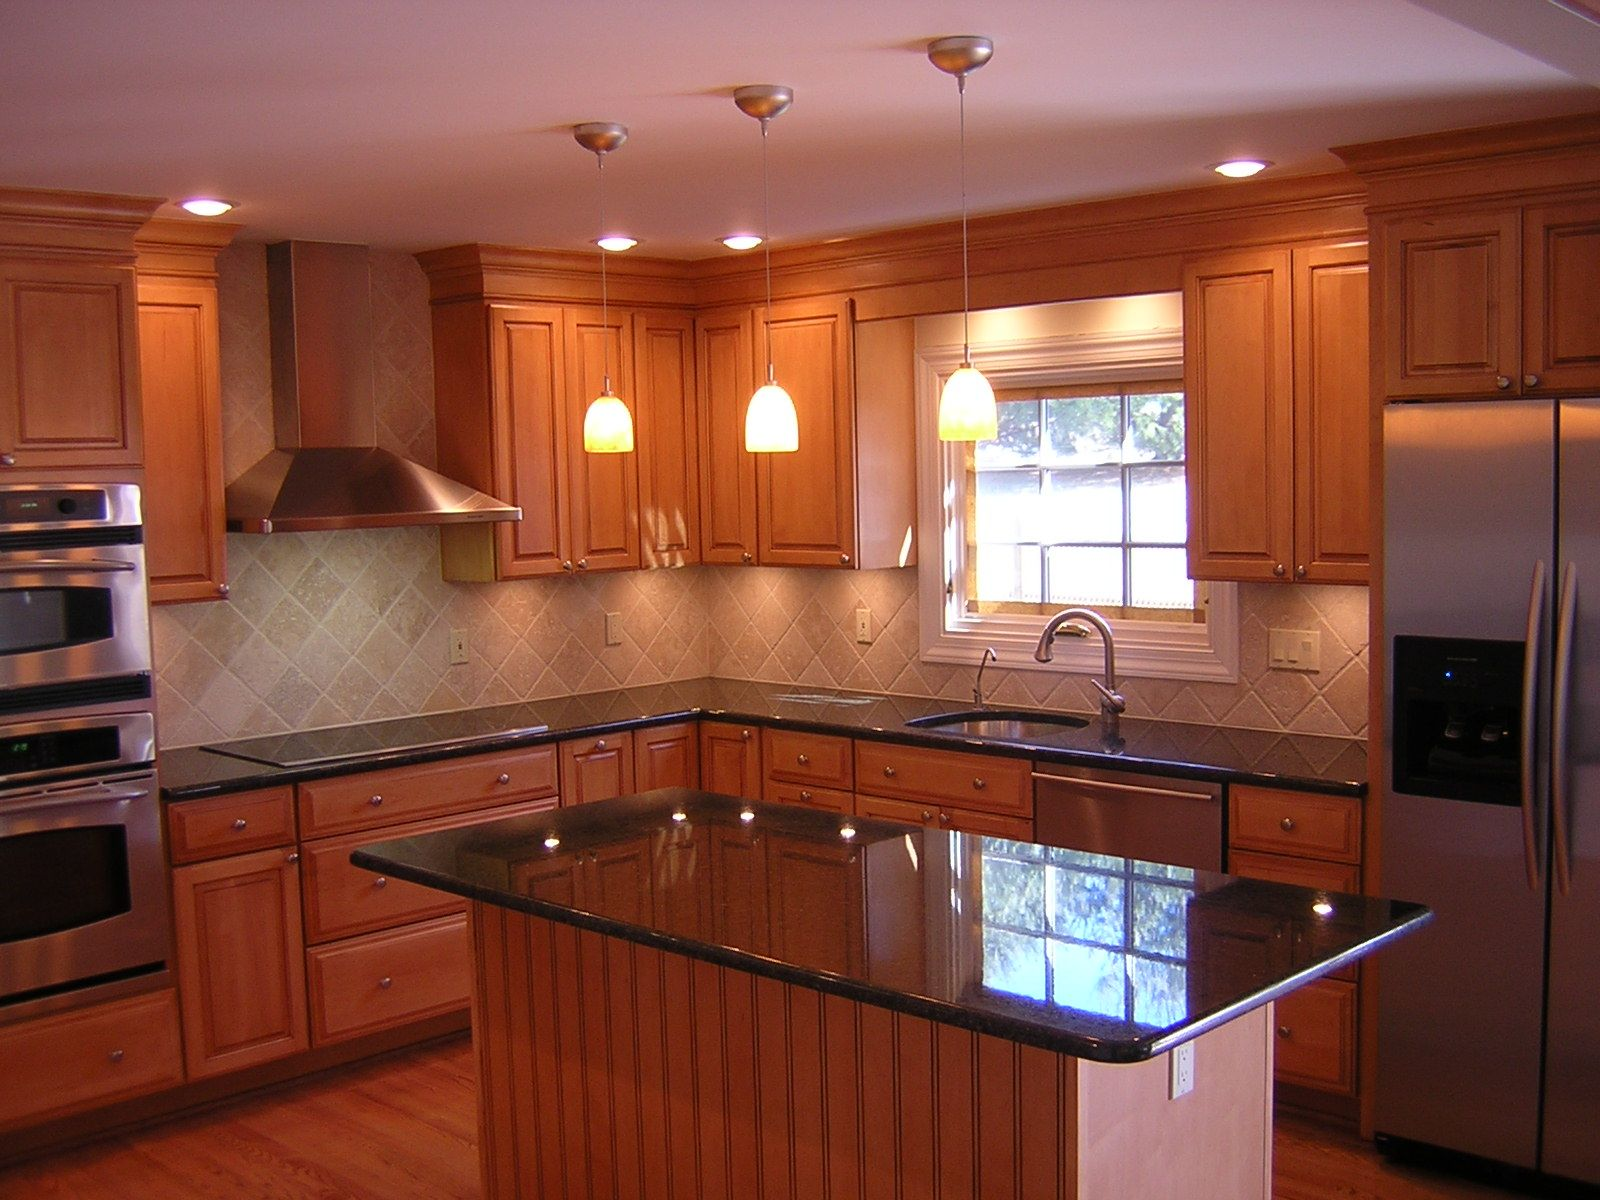 L Shaped Kitchen Remodel Remodelling Smallkitchenrenovationsinushapedkitchen  Lowes Kitchen .